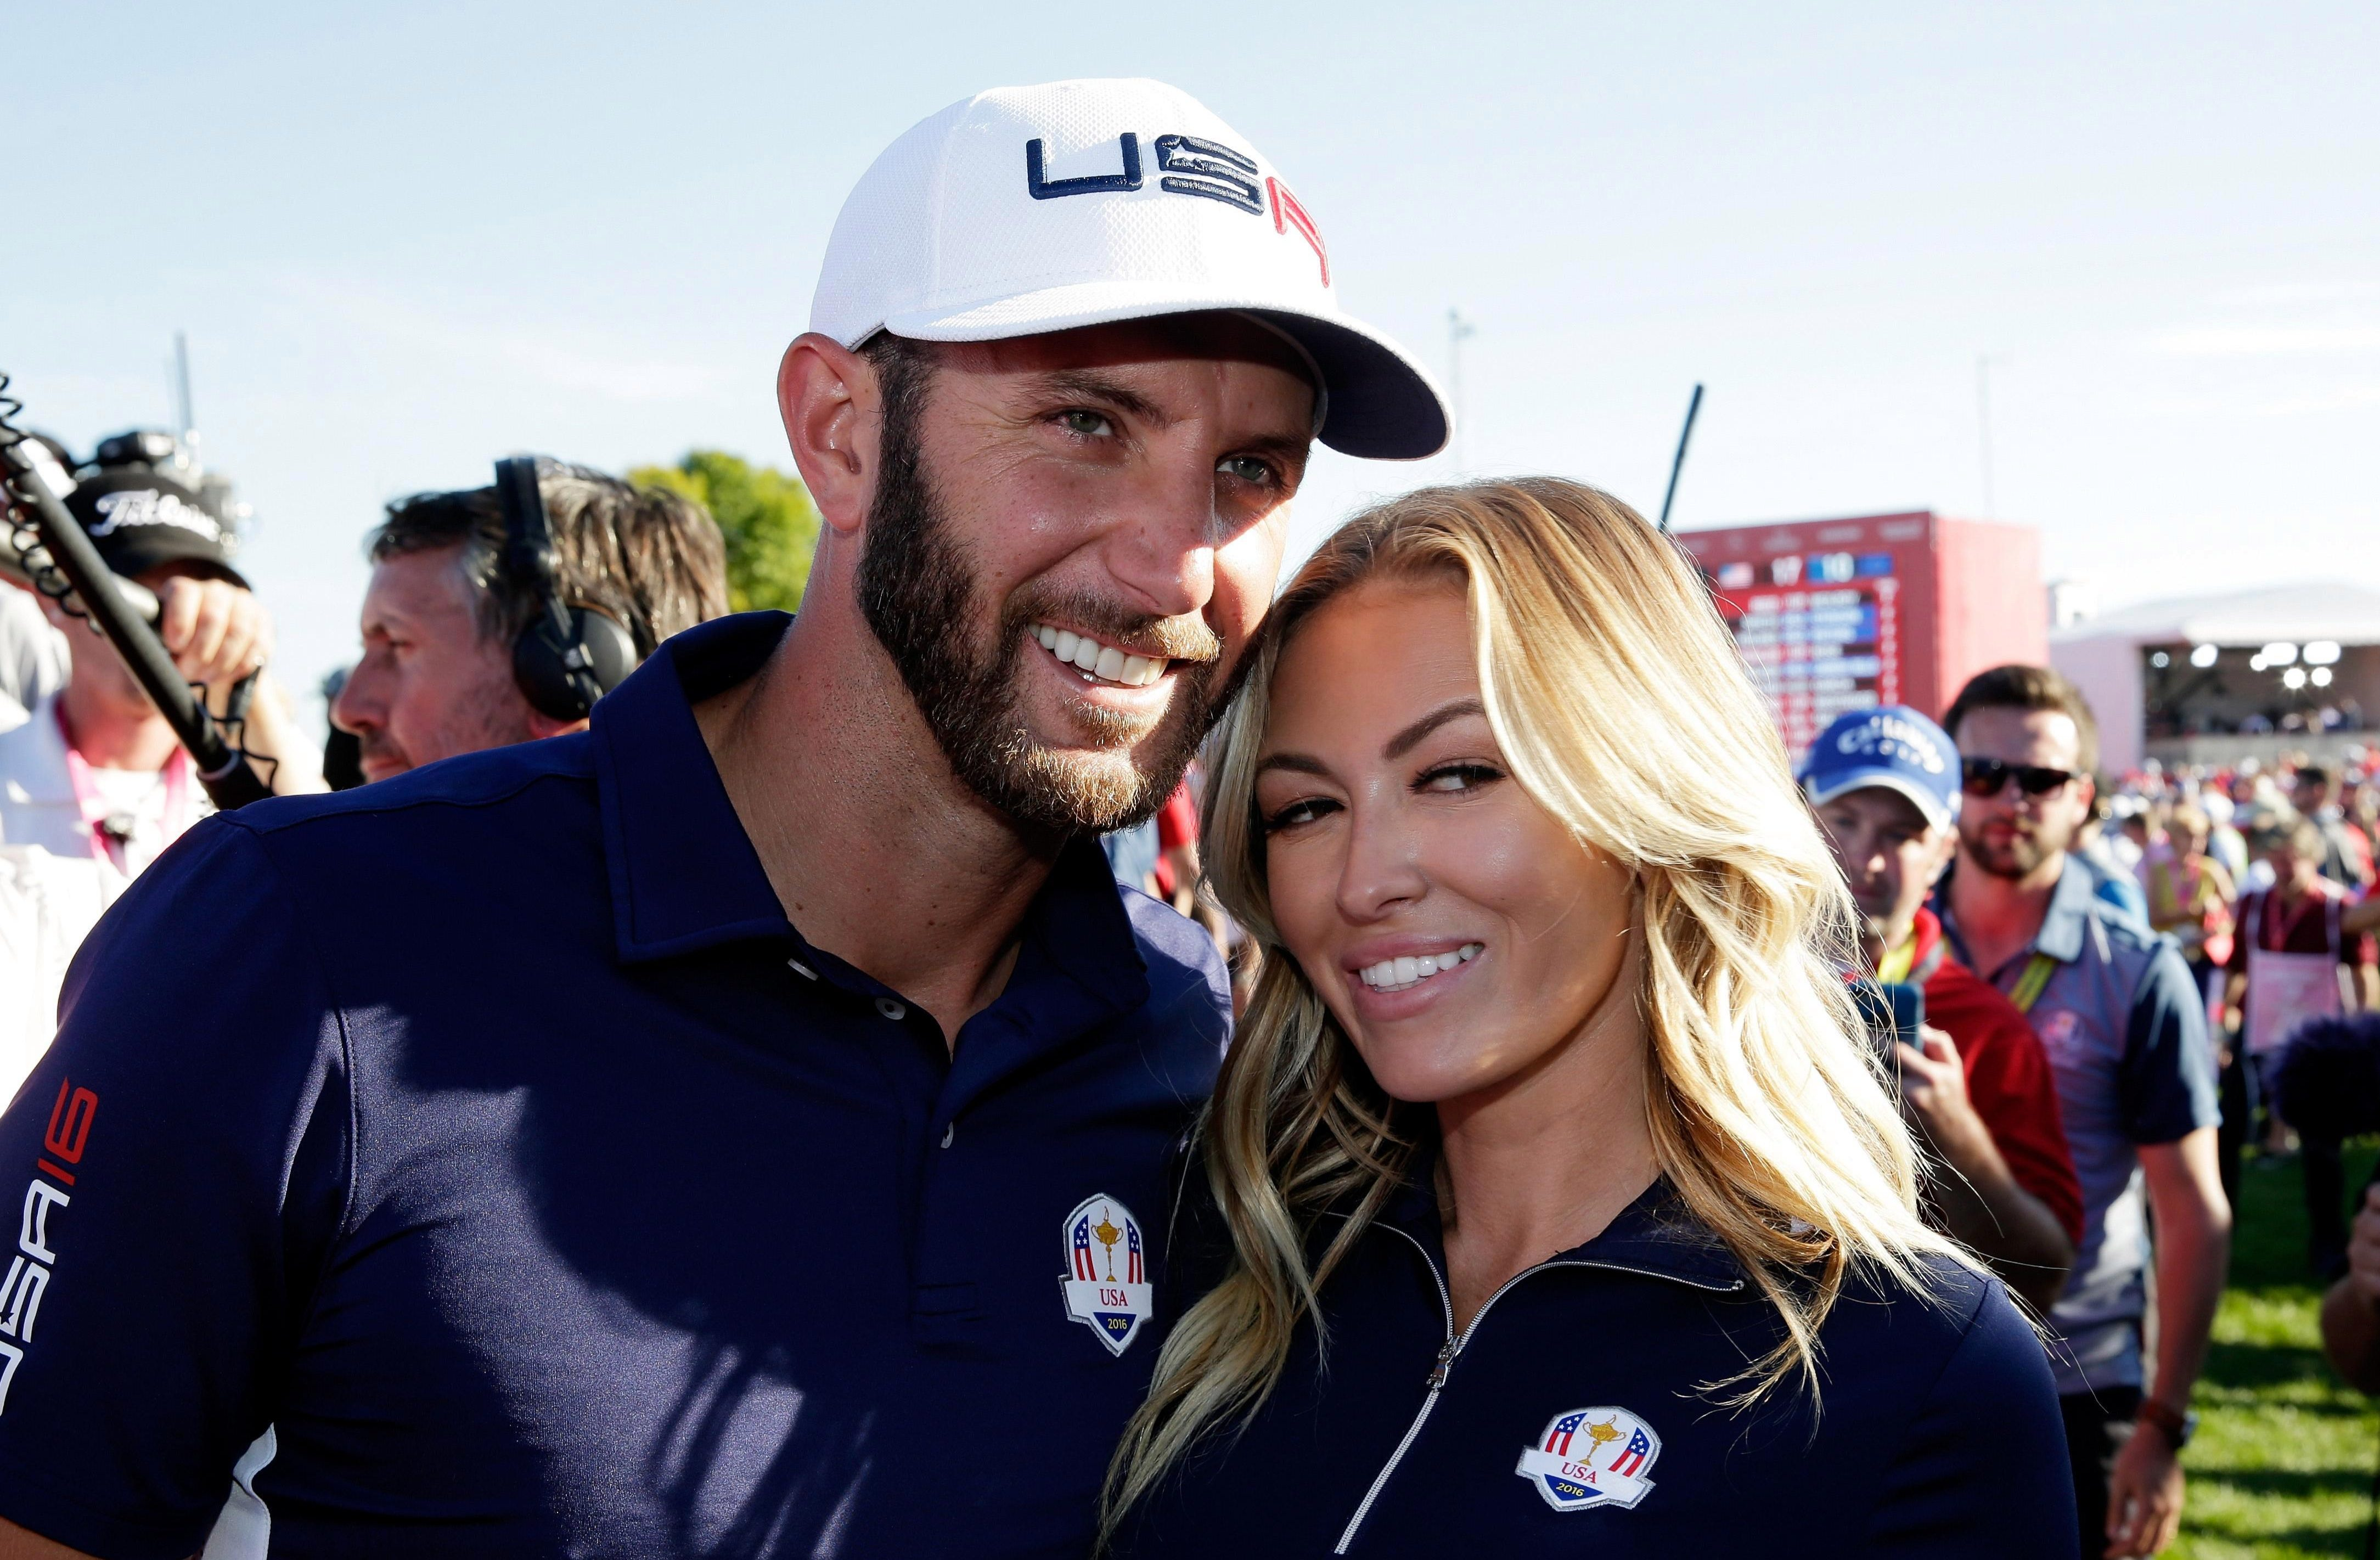 Paulina Gretzky will be in France to support fiance Dustin Johnson in the Ryder Cup after split rumours rocked their relationship